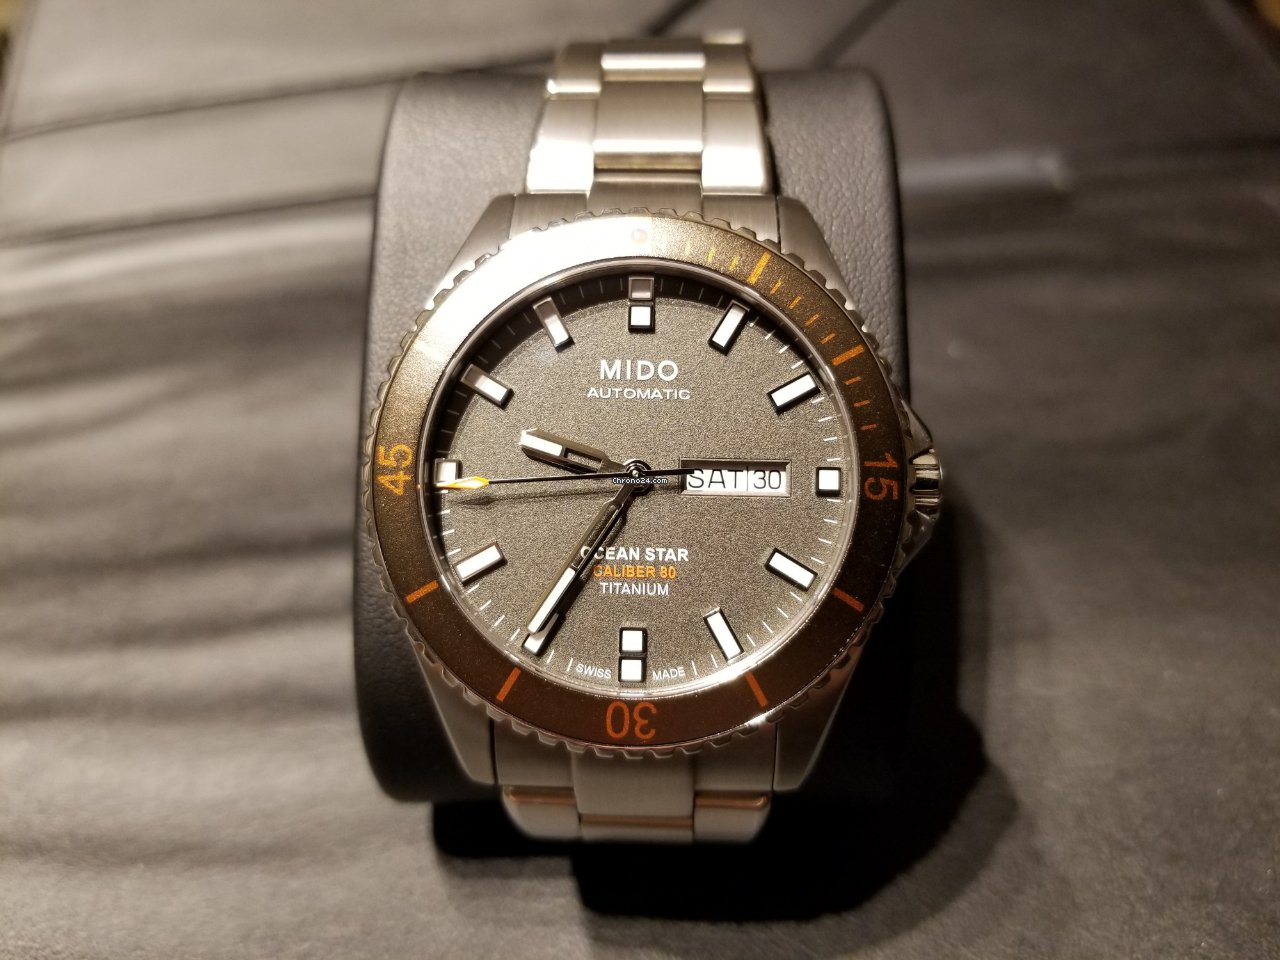 d1de8fac3cb Pre-Owned Mido Watches for Sale - Explore Watches at Chrono24